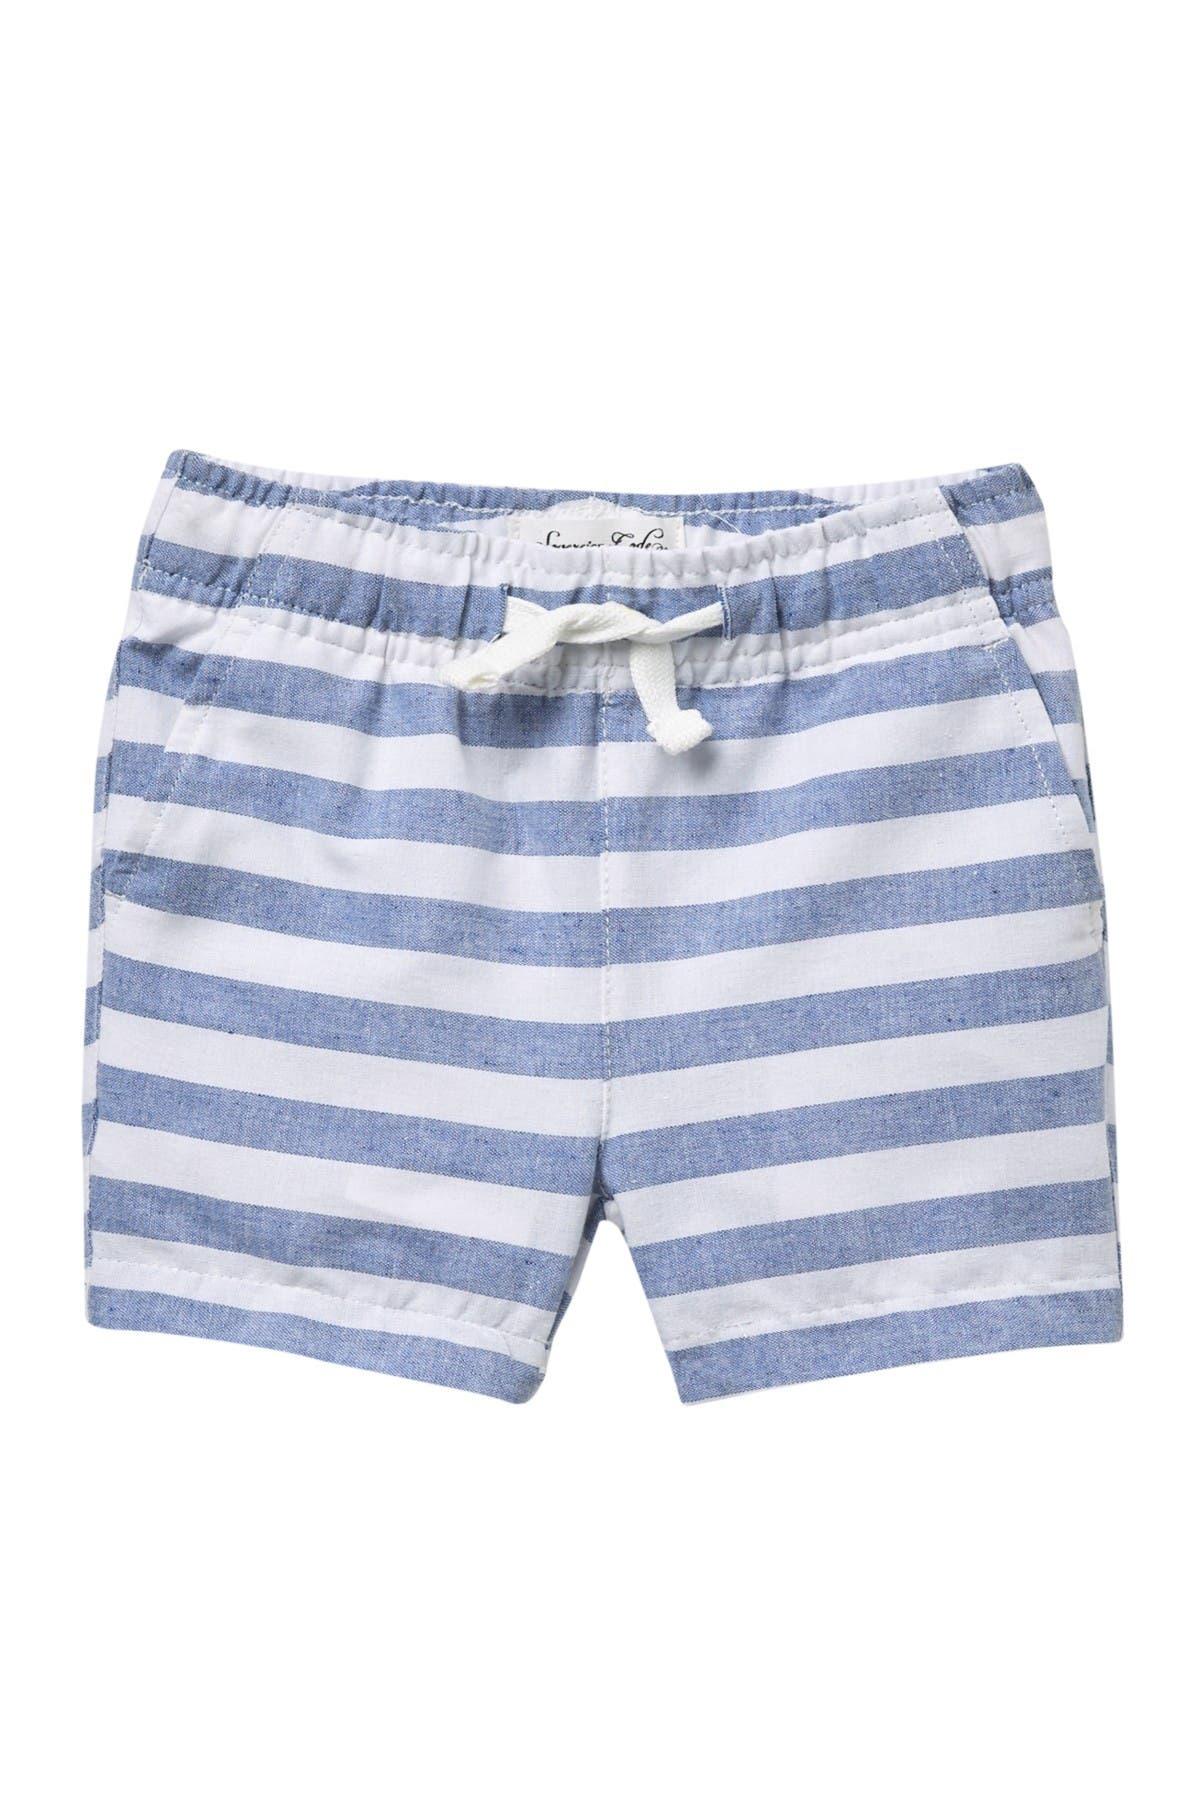 Image of Sovereign Code Quigley Shorts